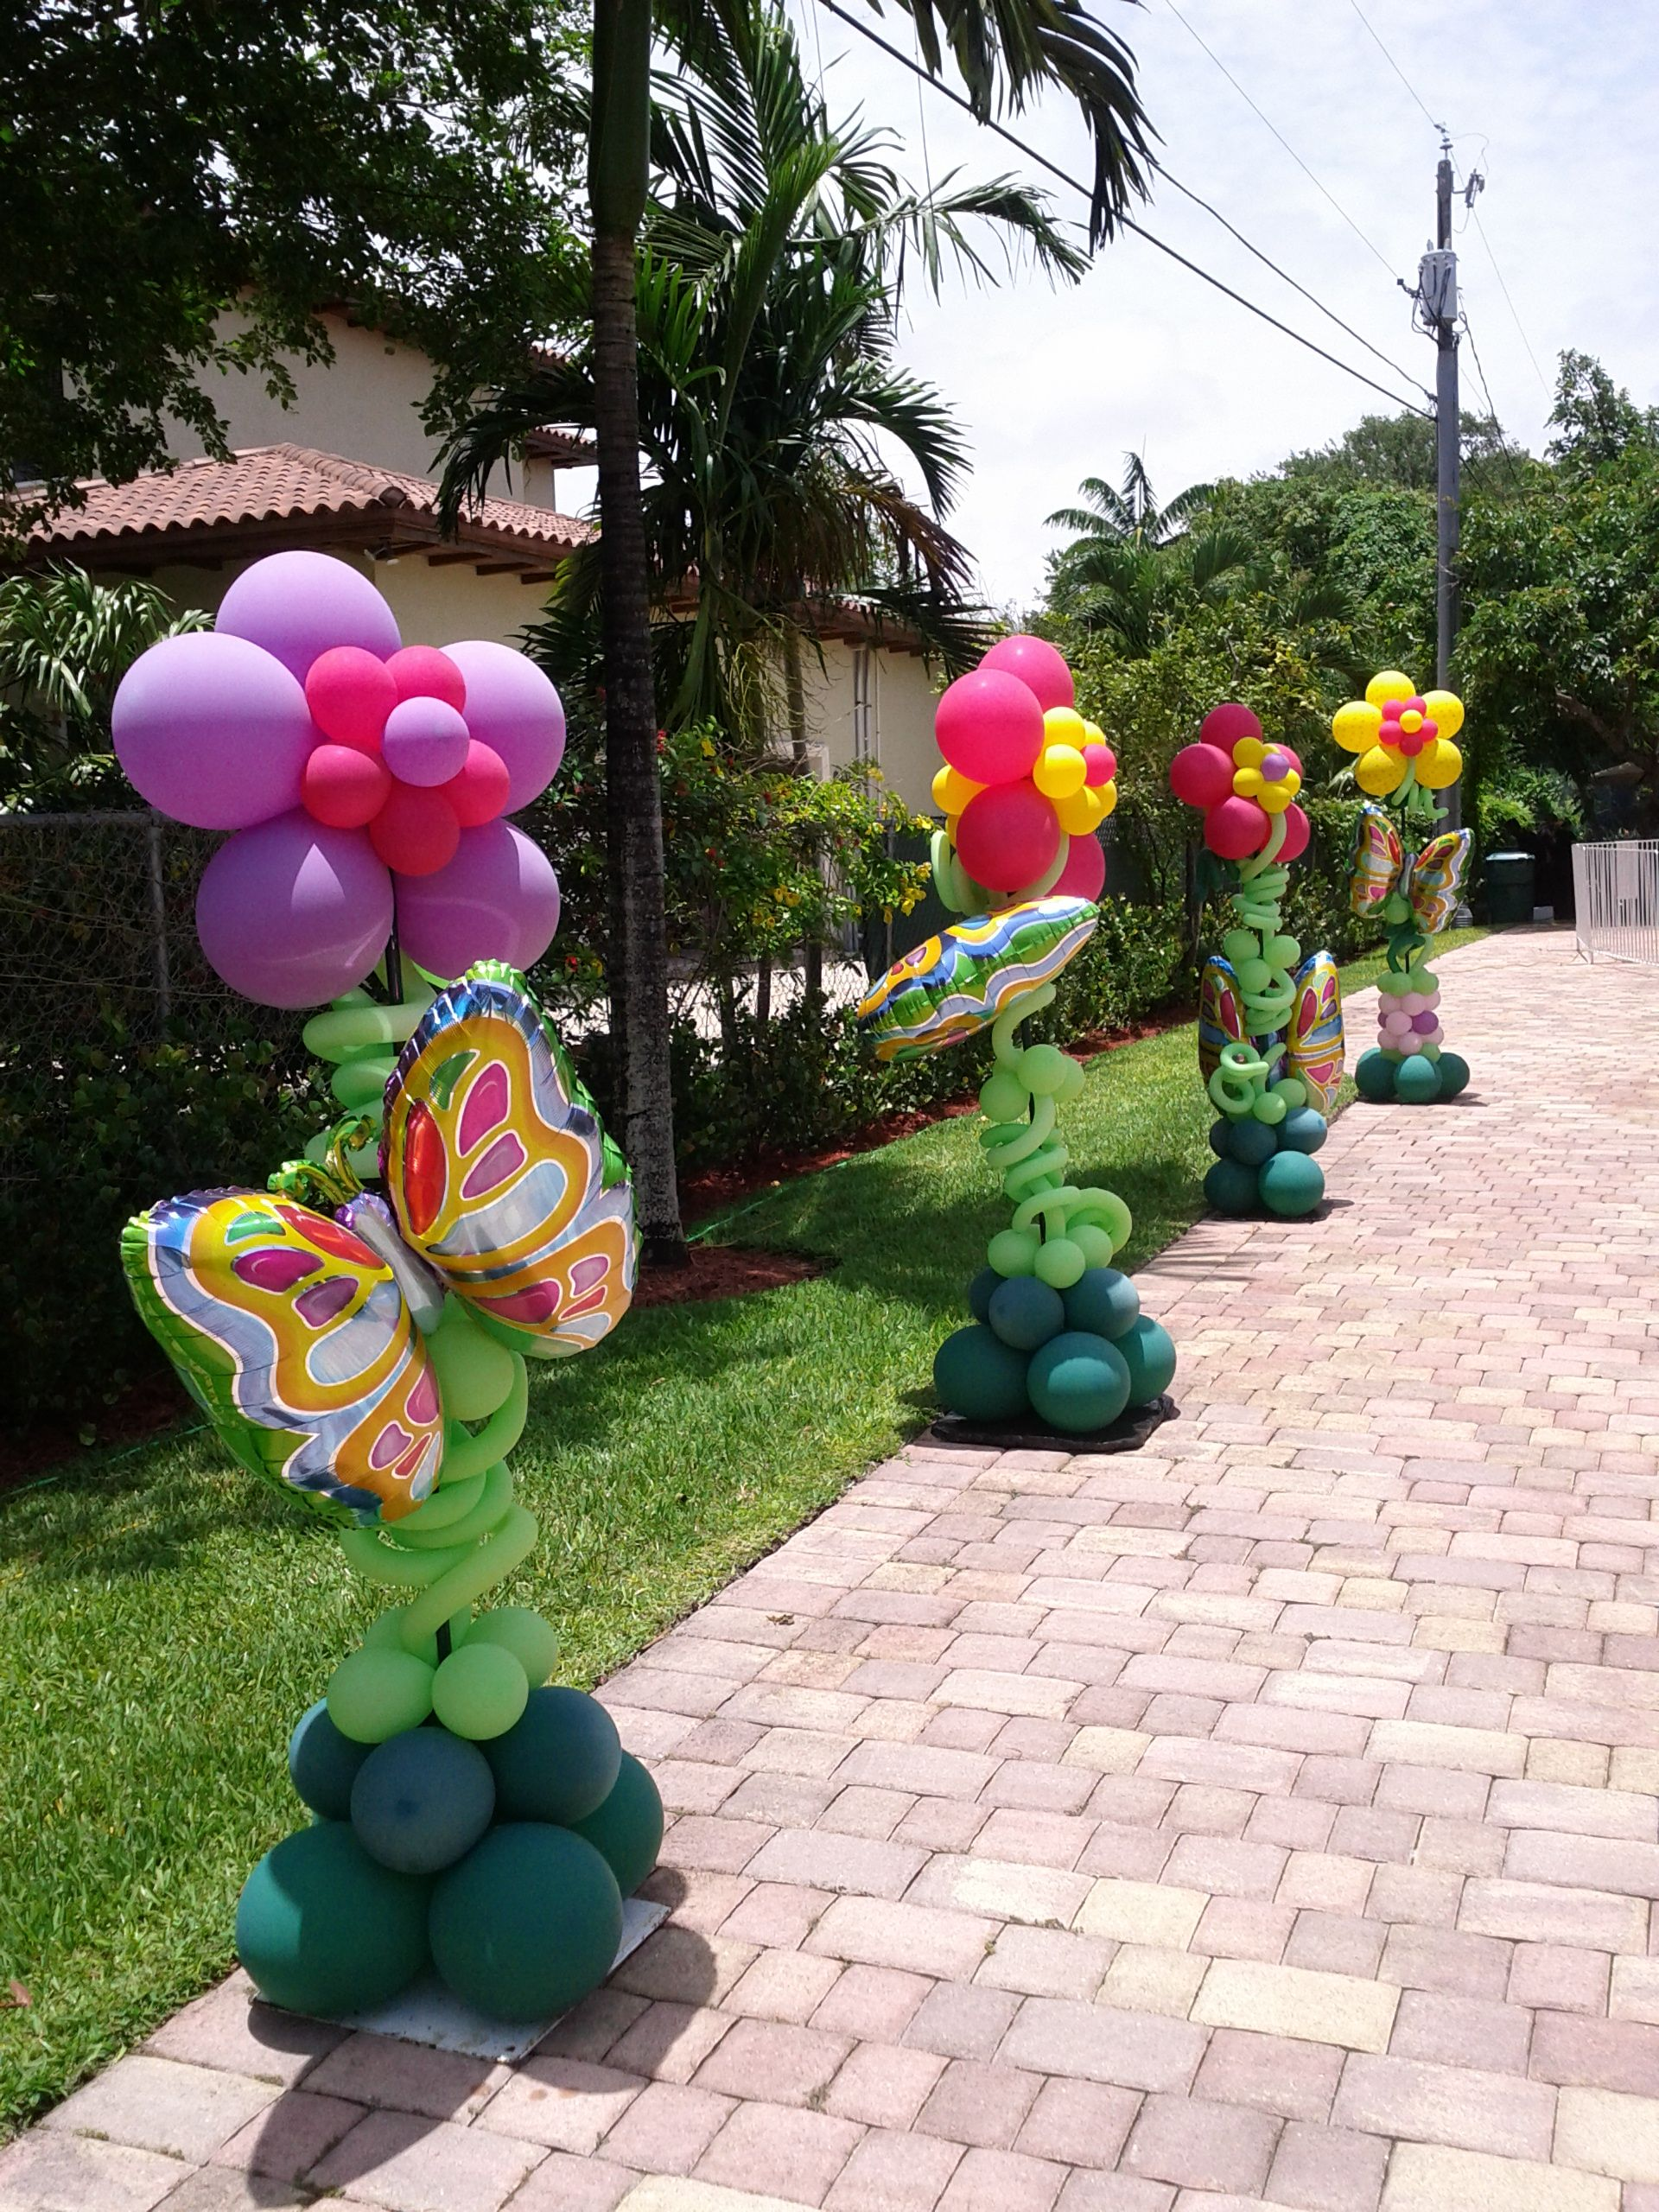 backyard party decoration with balloon flowers sculpture and